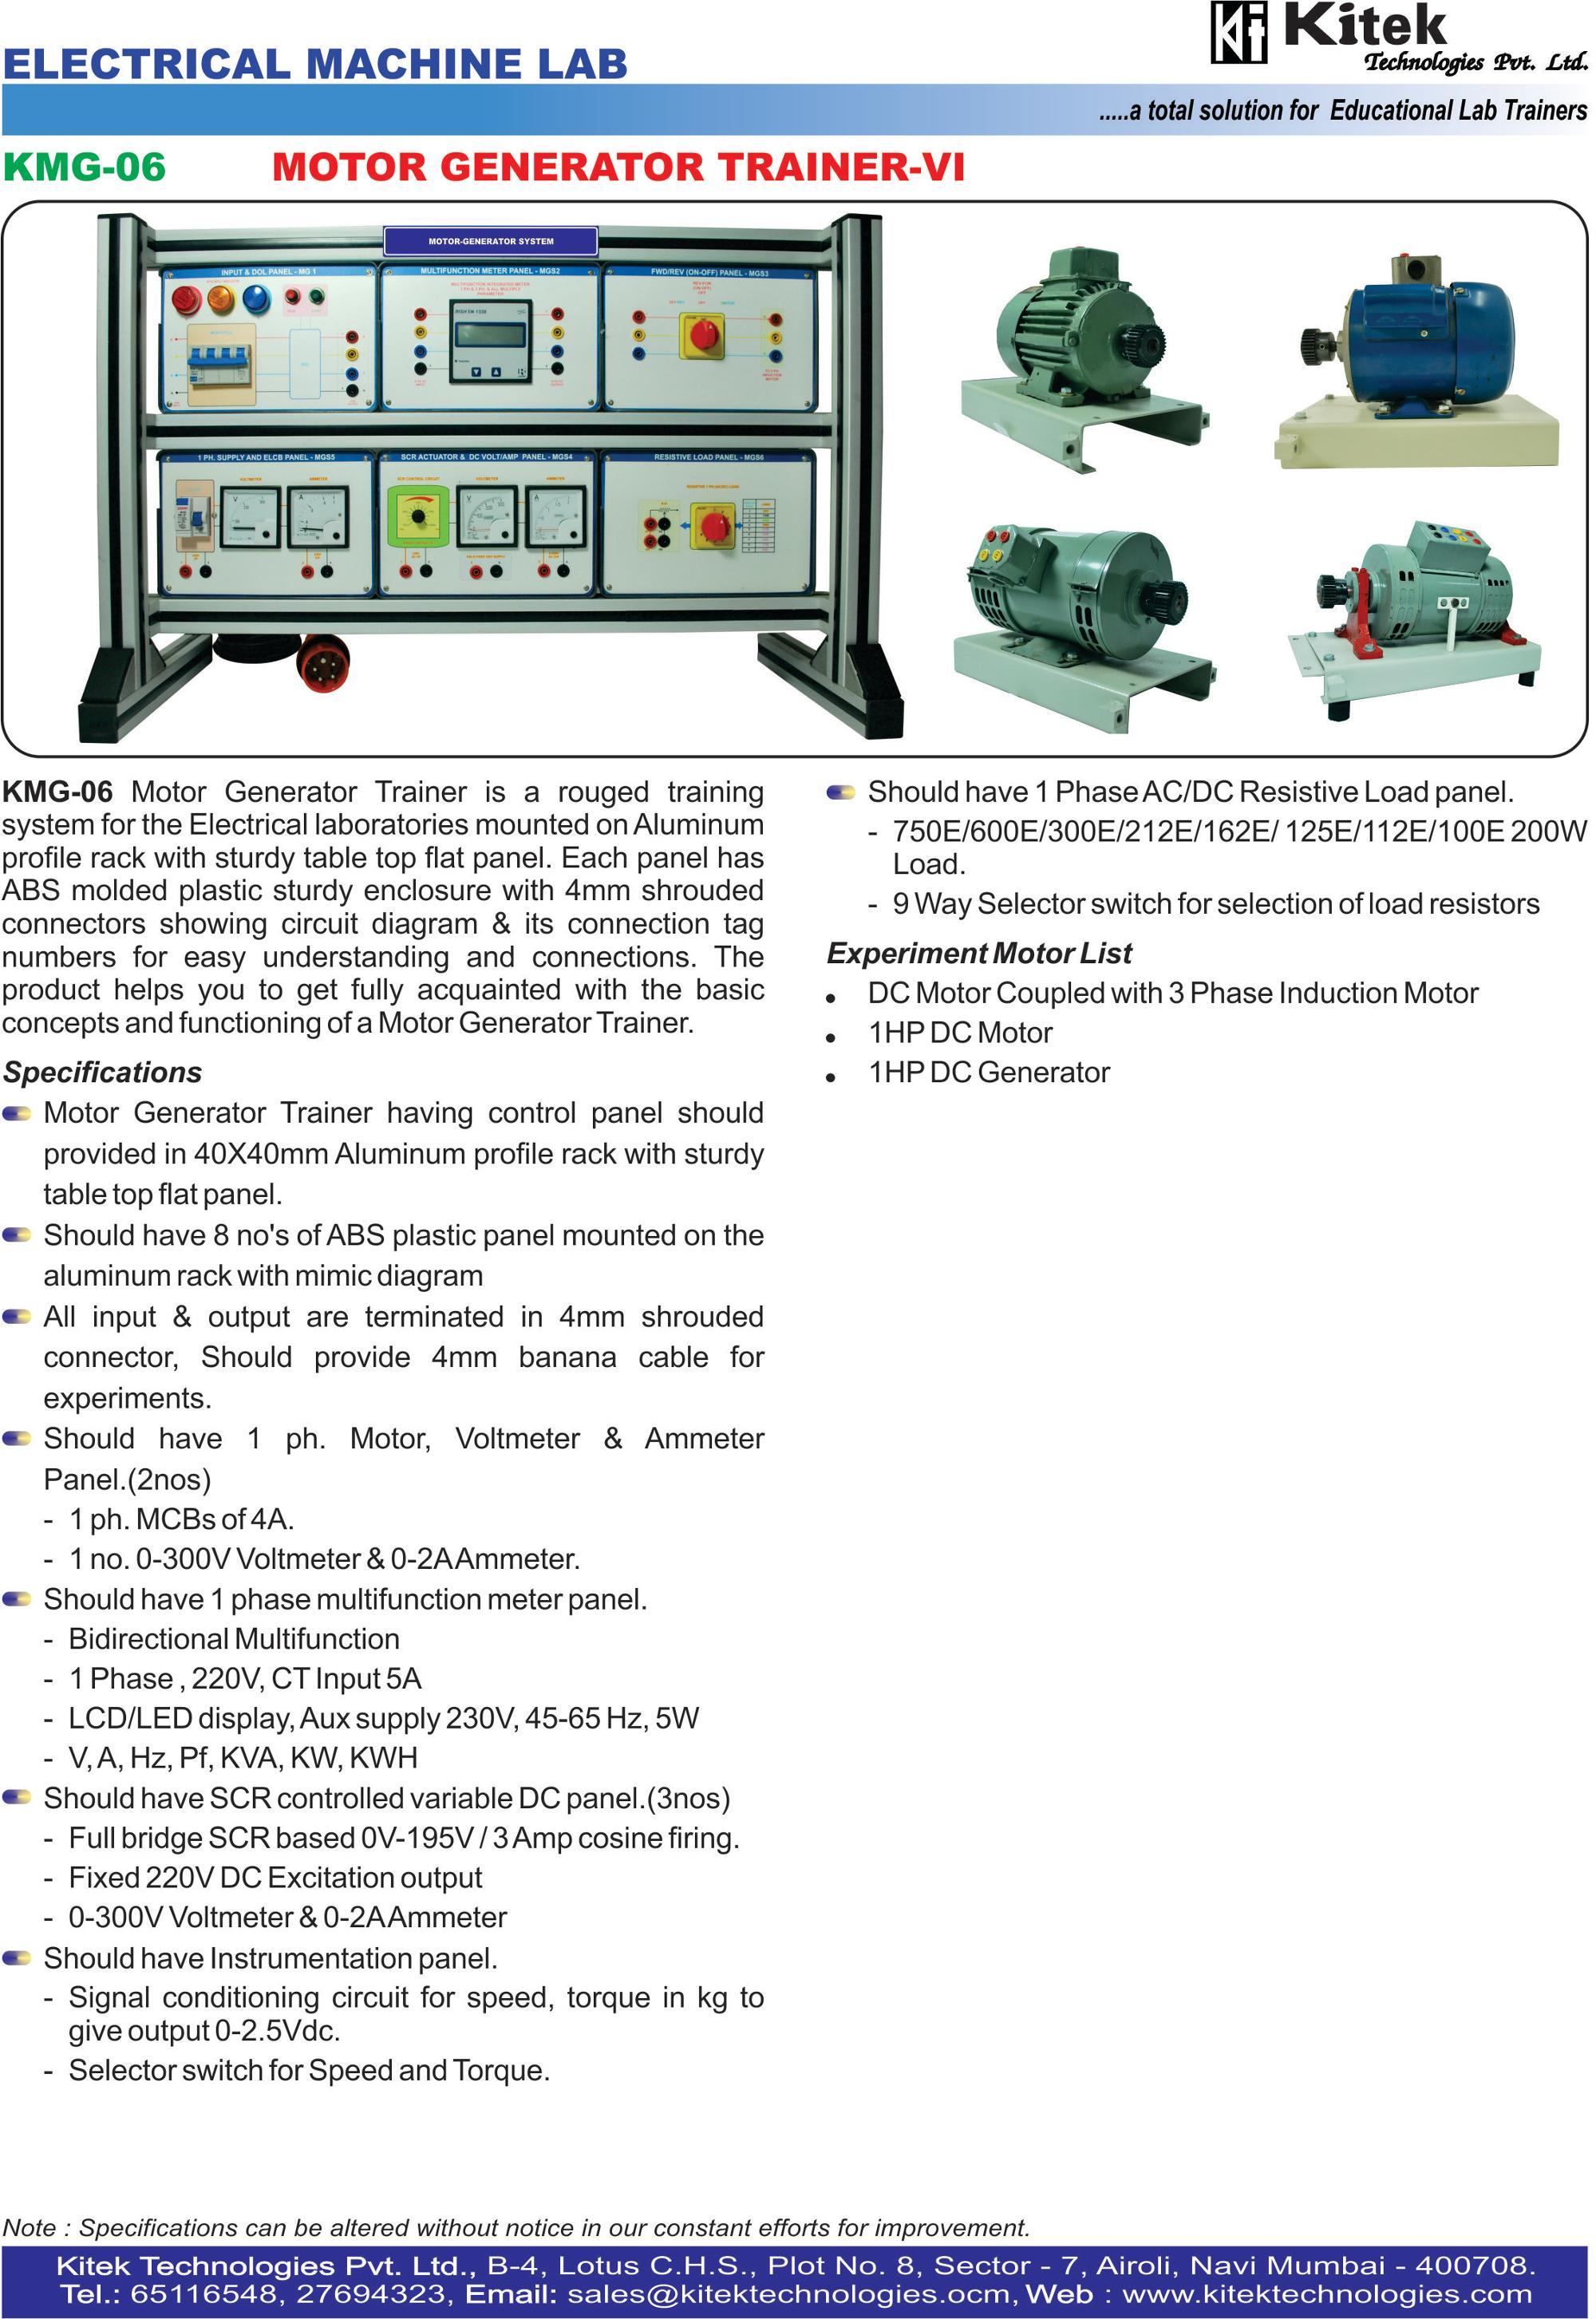 Motor Generator Trainer -II / Electrical Machine Trainer / Electrical Machine Lab Vocational Training Mechatronics Training